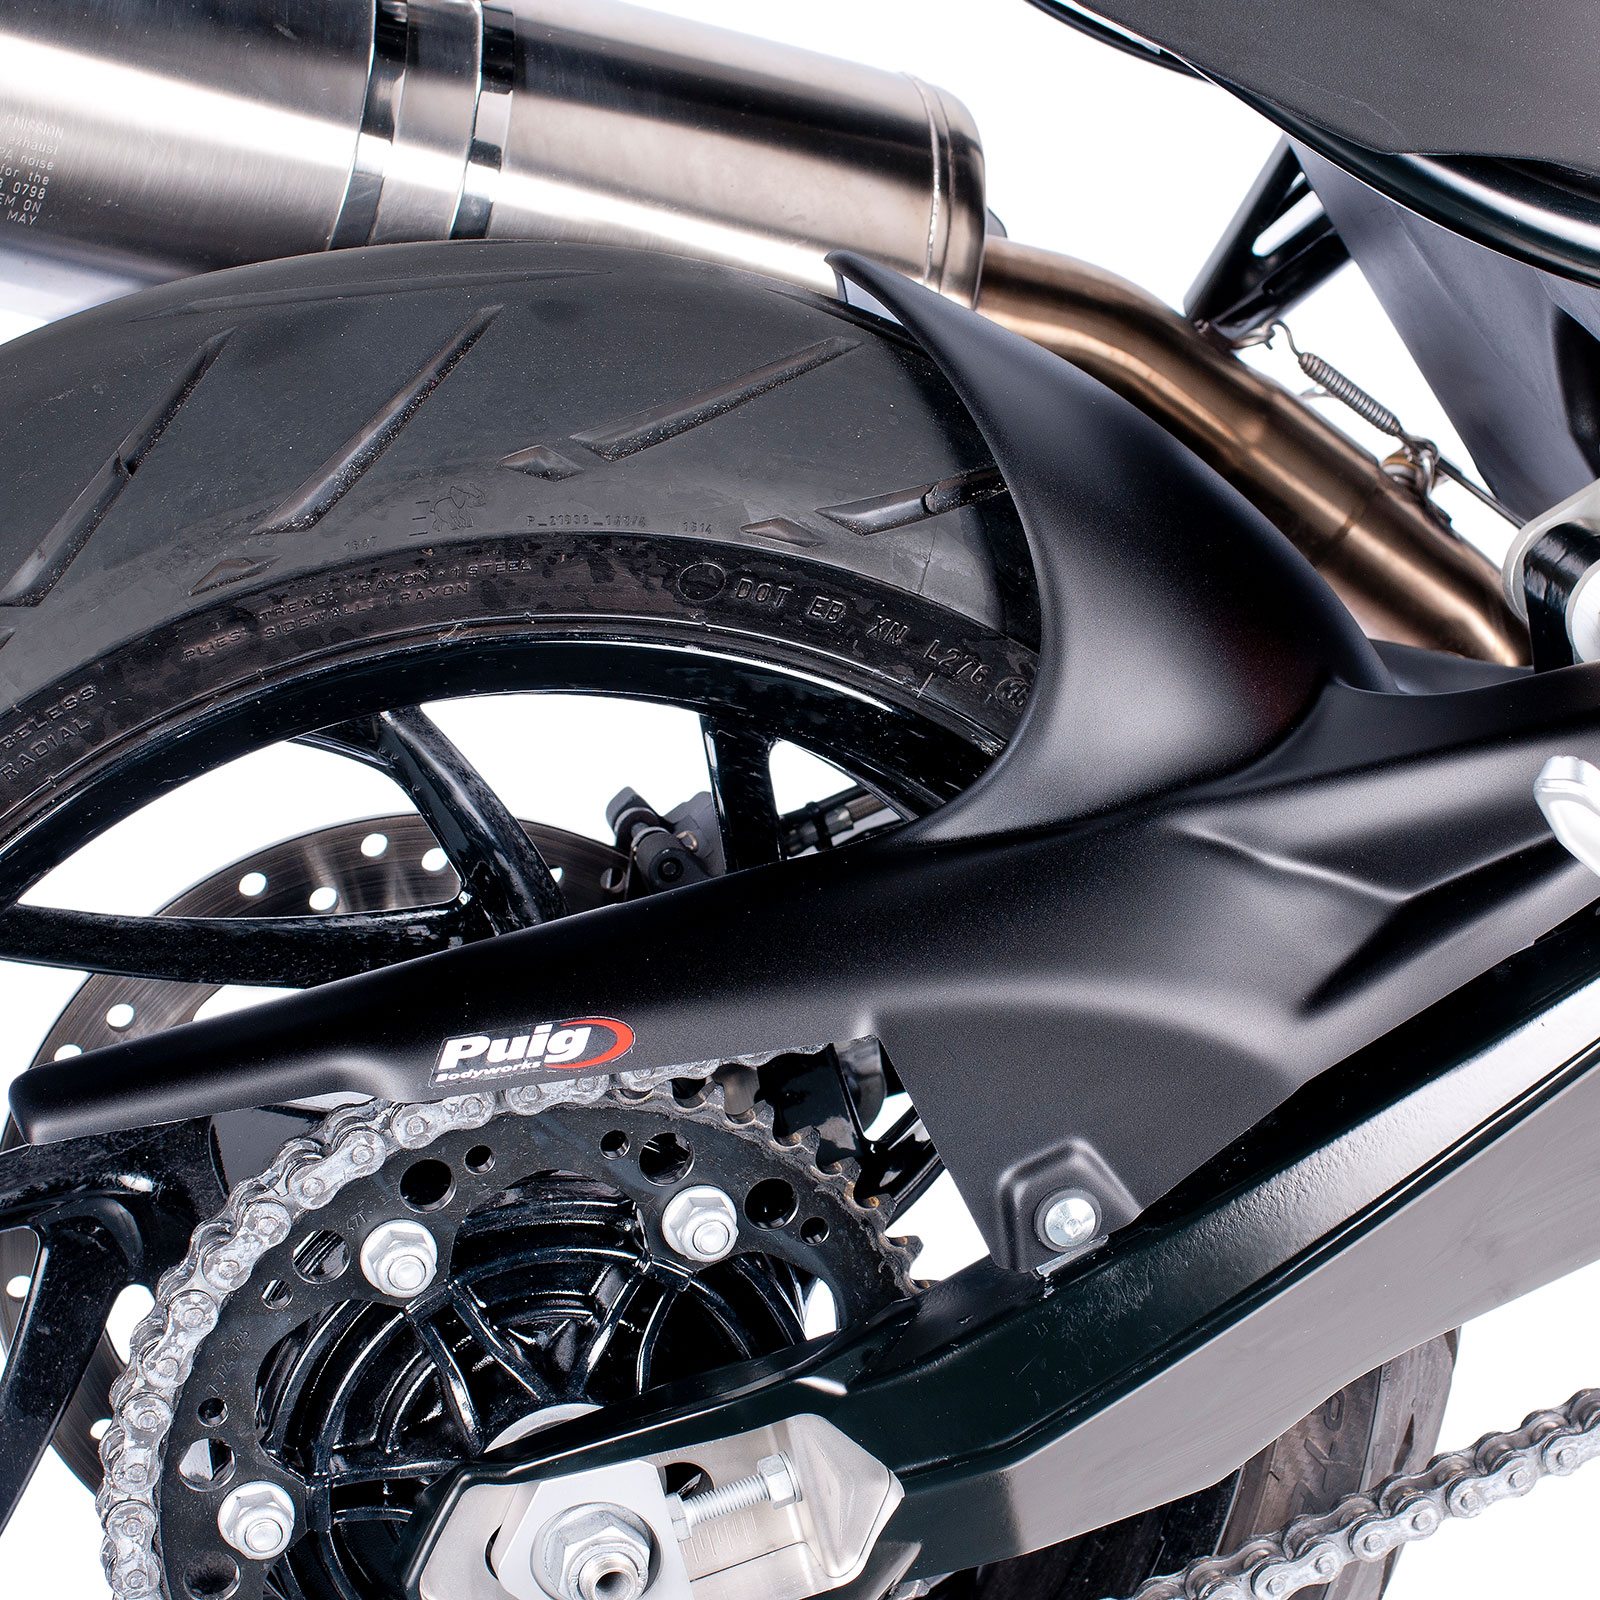 Details About Puig Motorcycle Rear Wheel Hugger Bmw F 800 R 2009 2019 Black